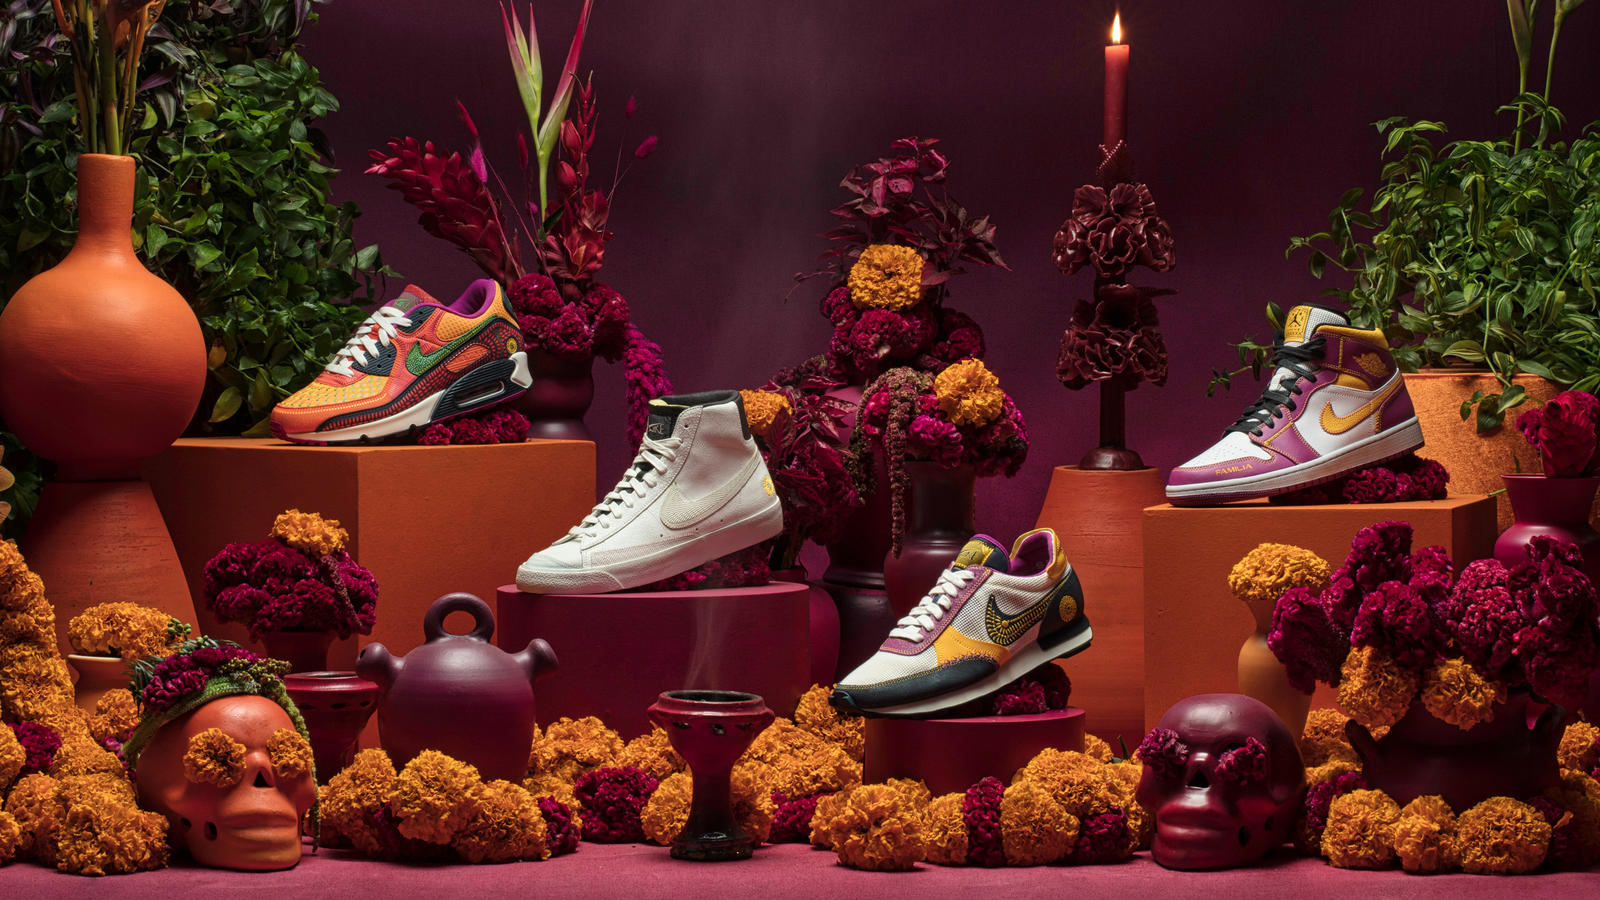 nike 2020 day of the dead collection ナイキ 死者の日 コレクション 2020年